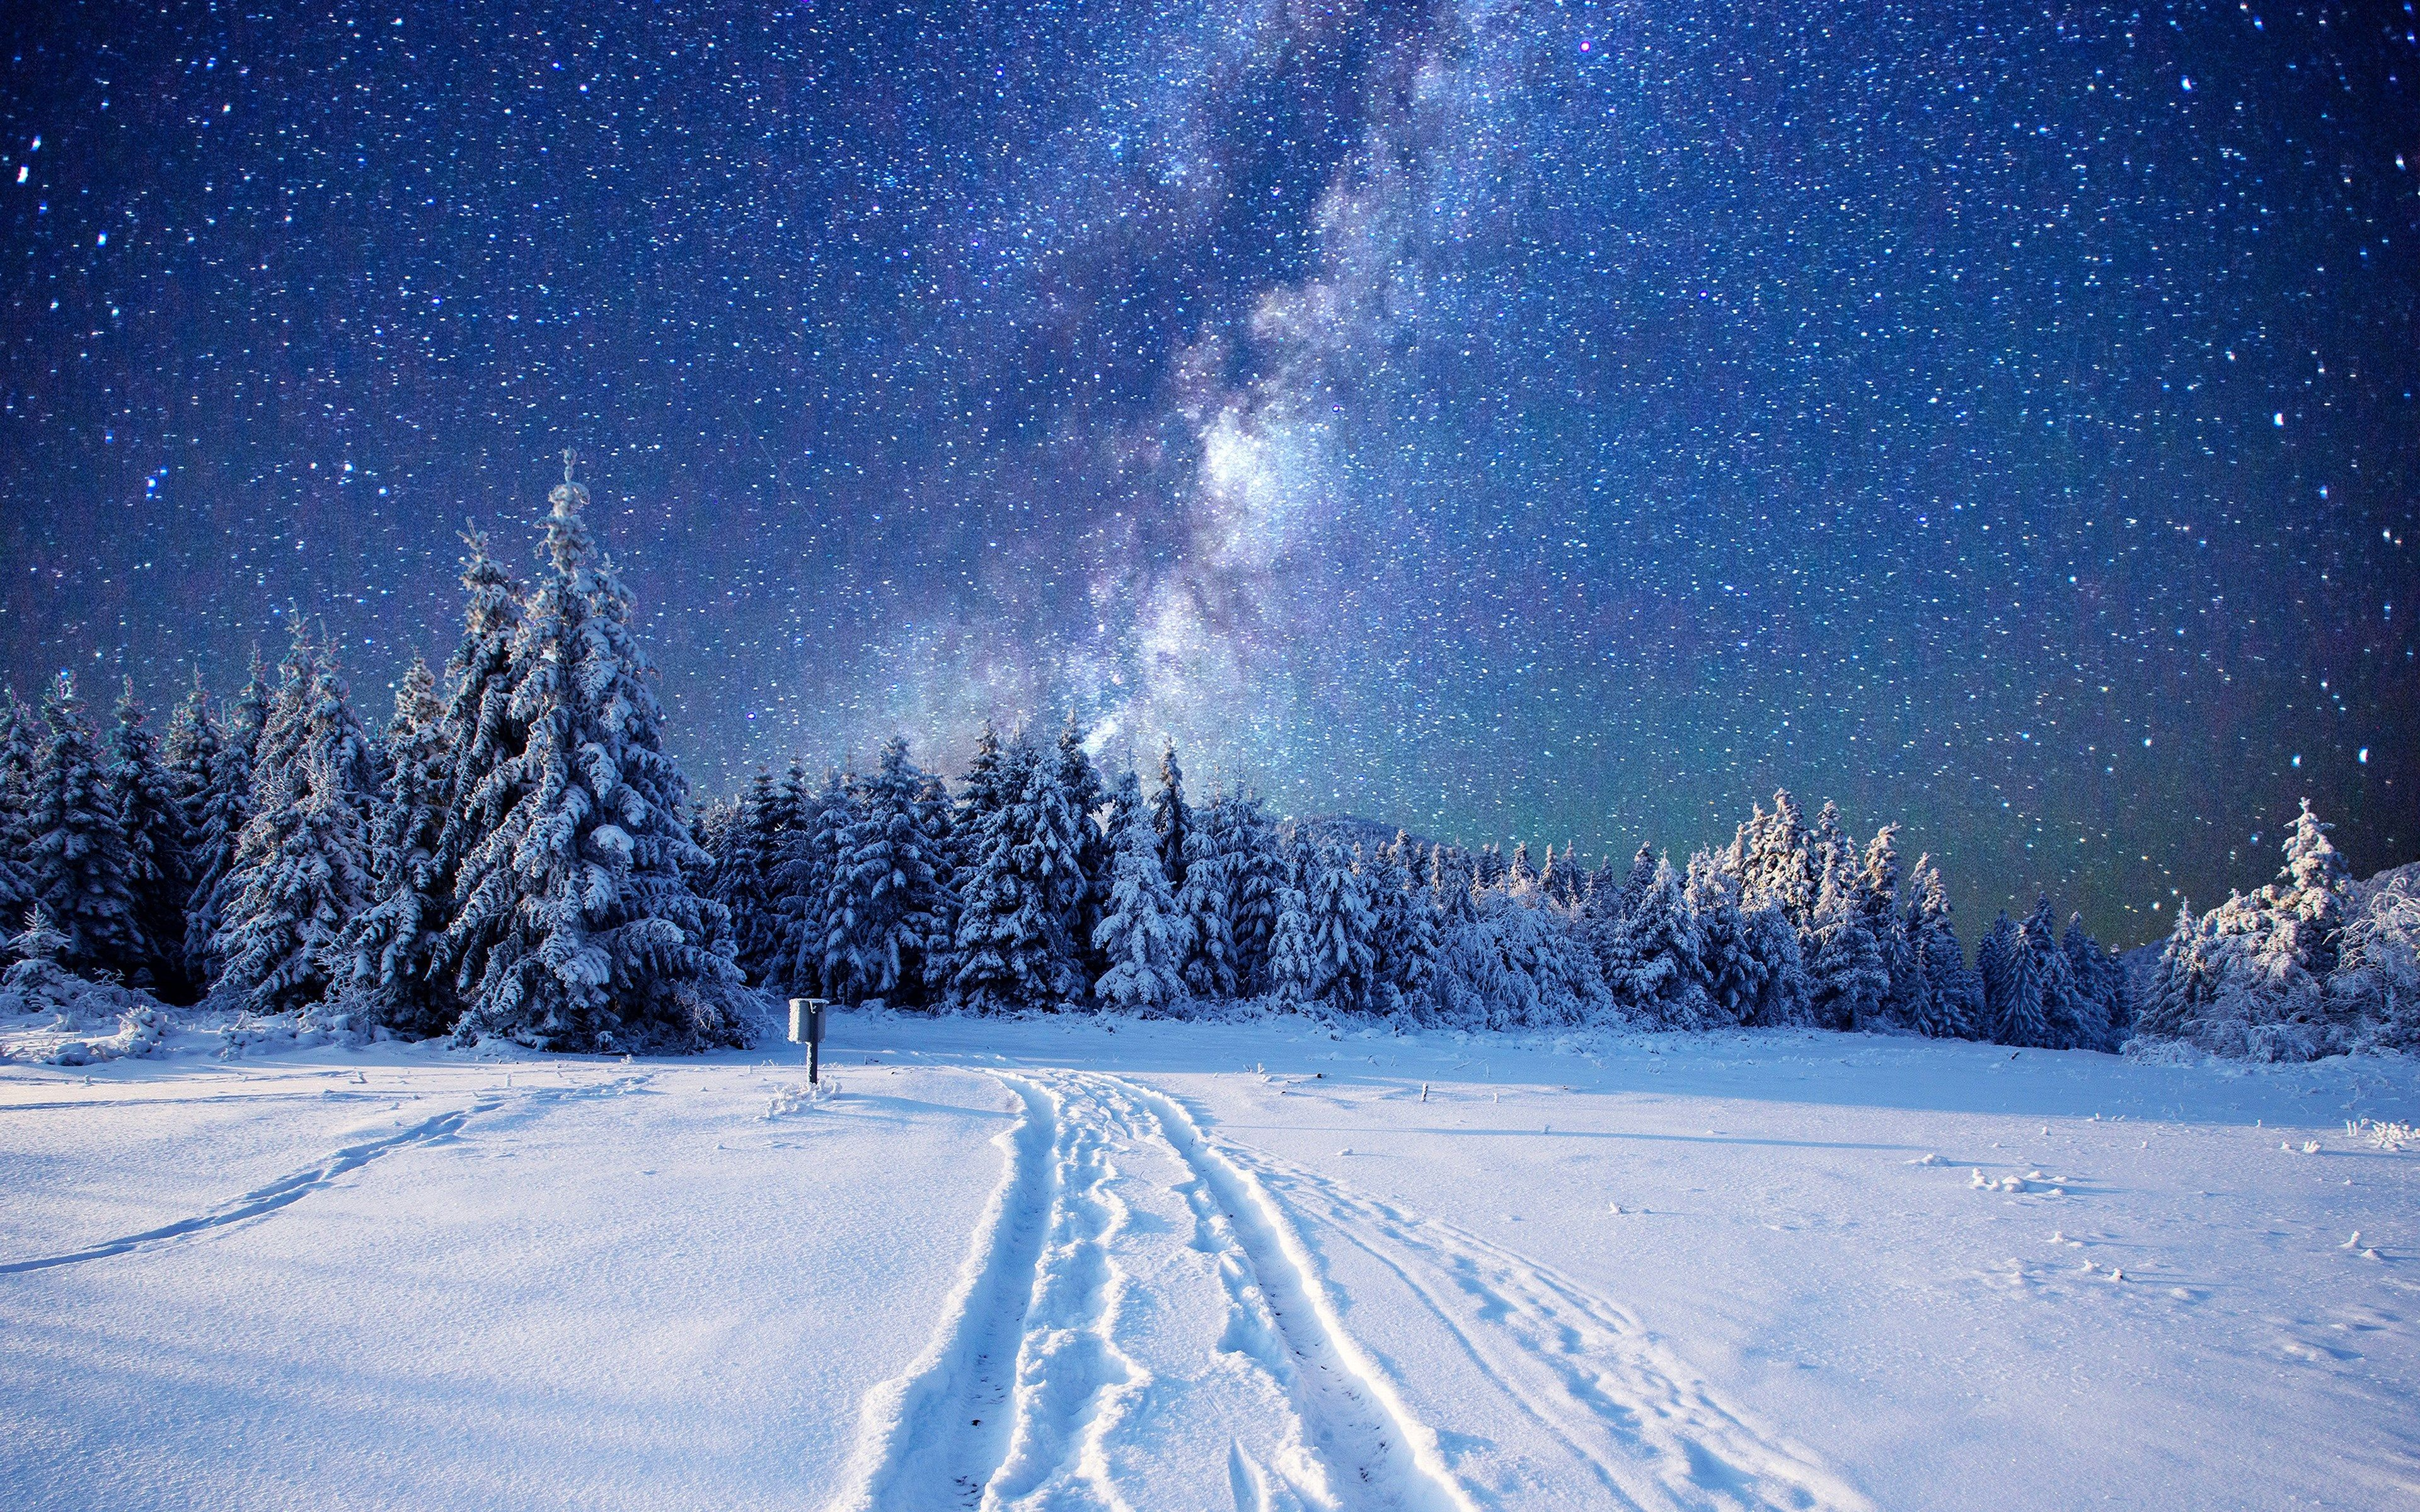 Winter 4k Wallpaper 3840x2400 In 2020 With Images Night Landscape Winter Sky Snow Night